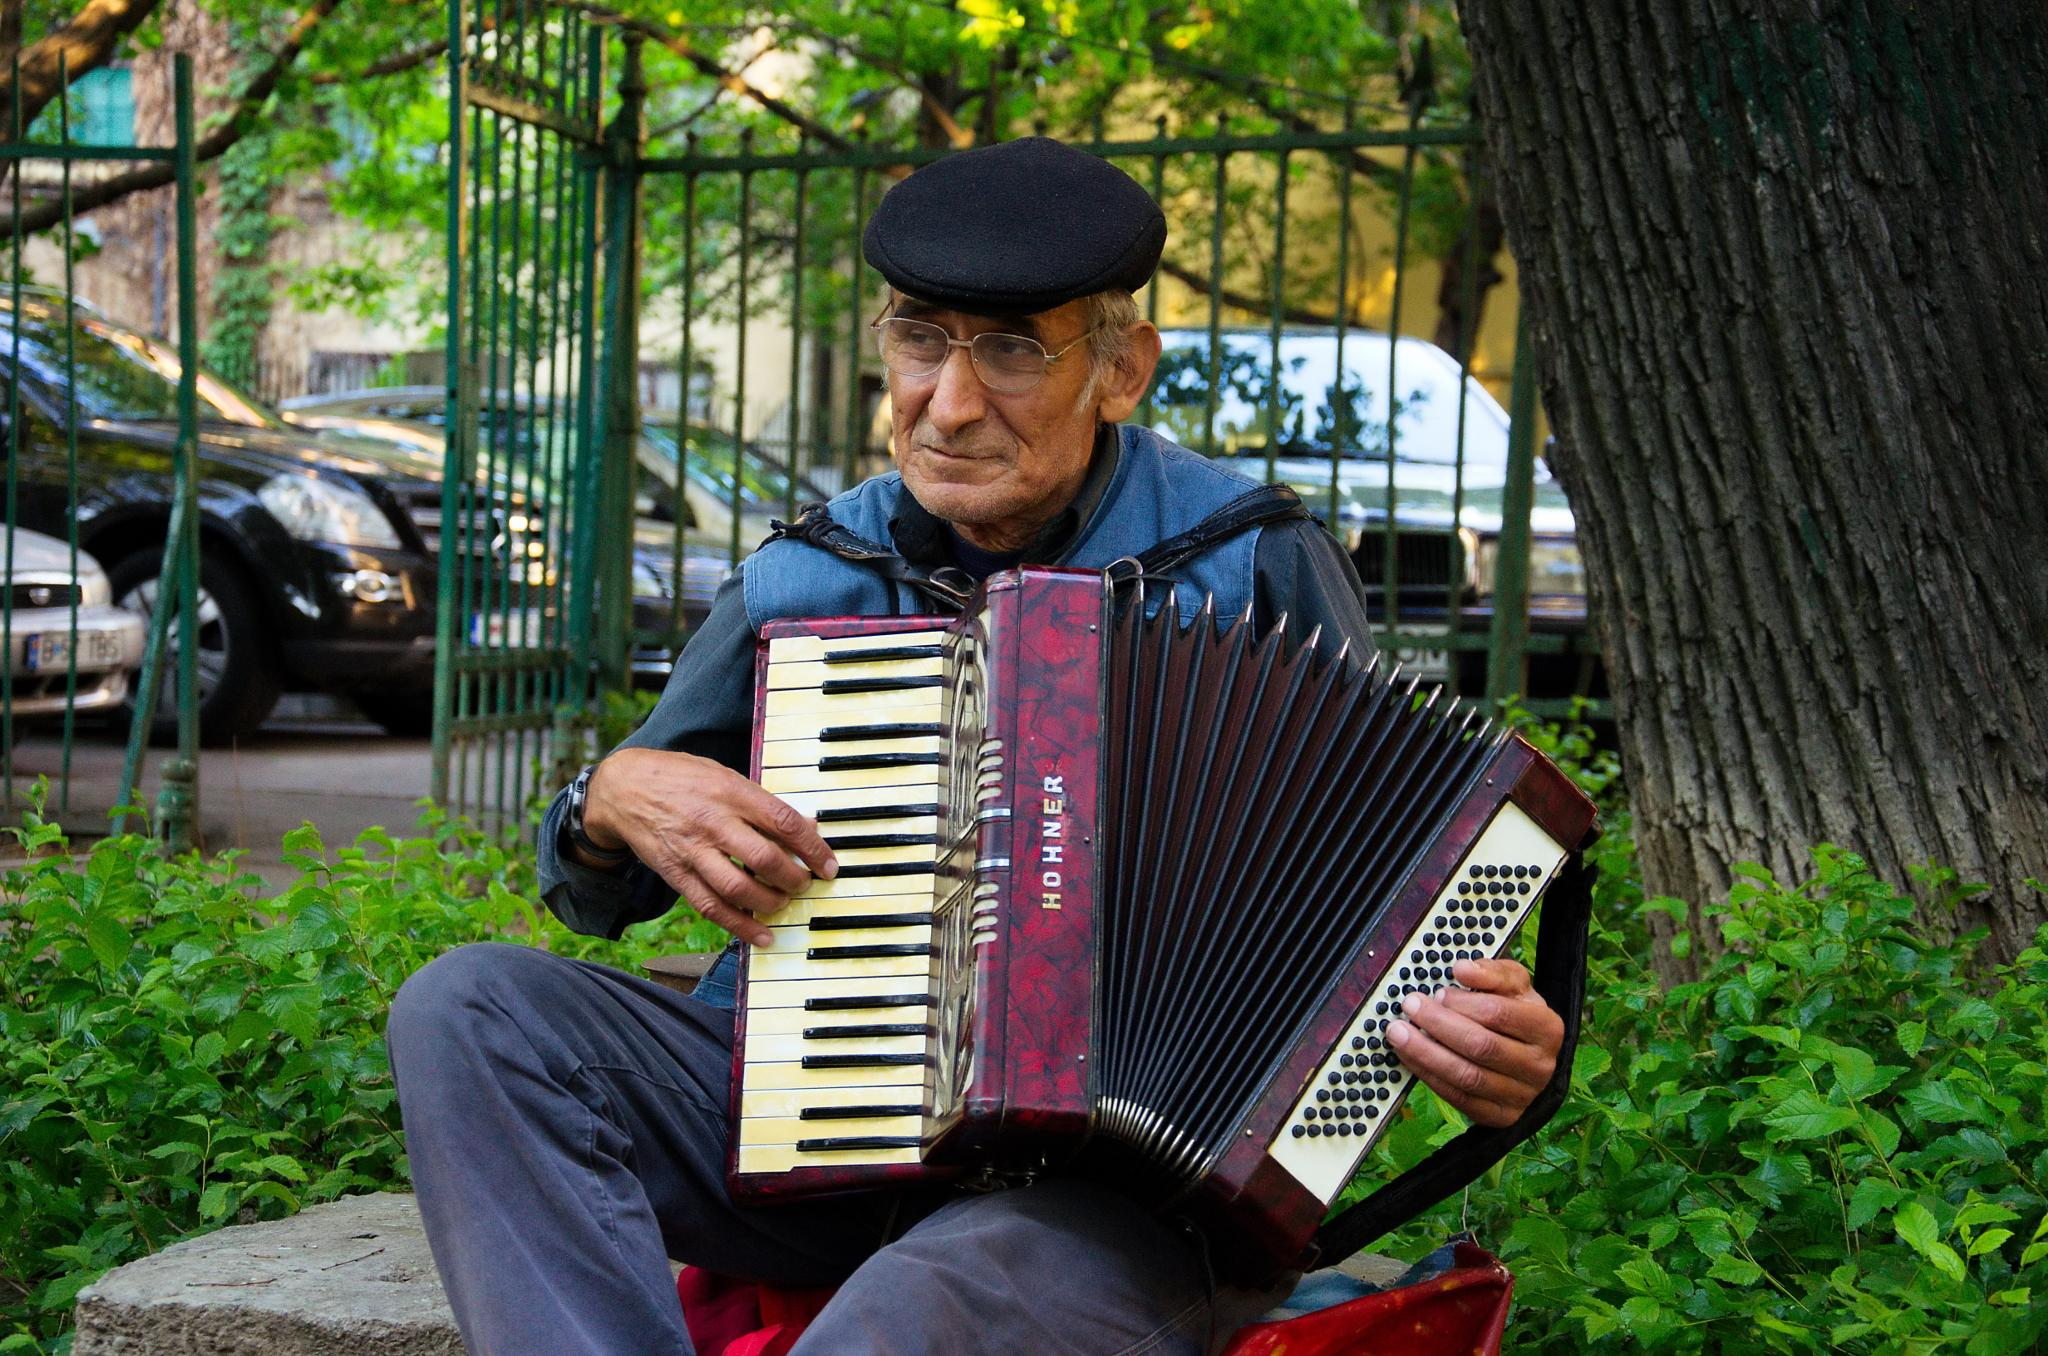 Accordion in the park! by alexandru nae